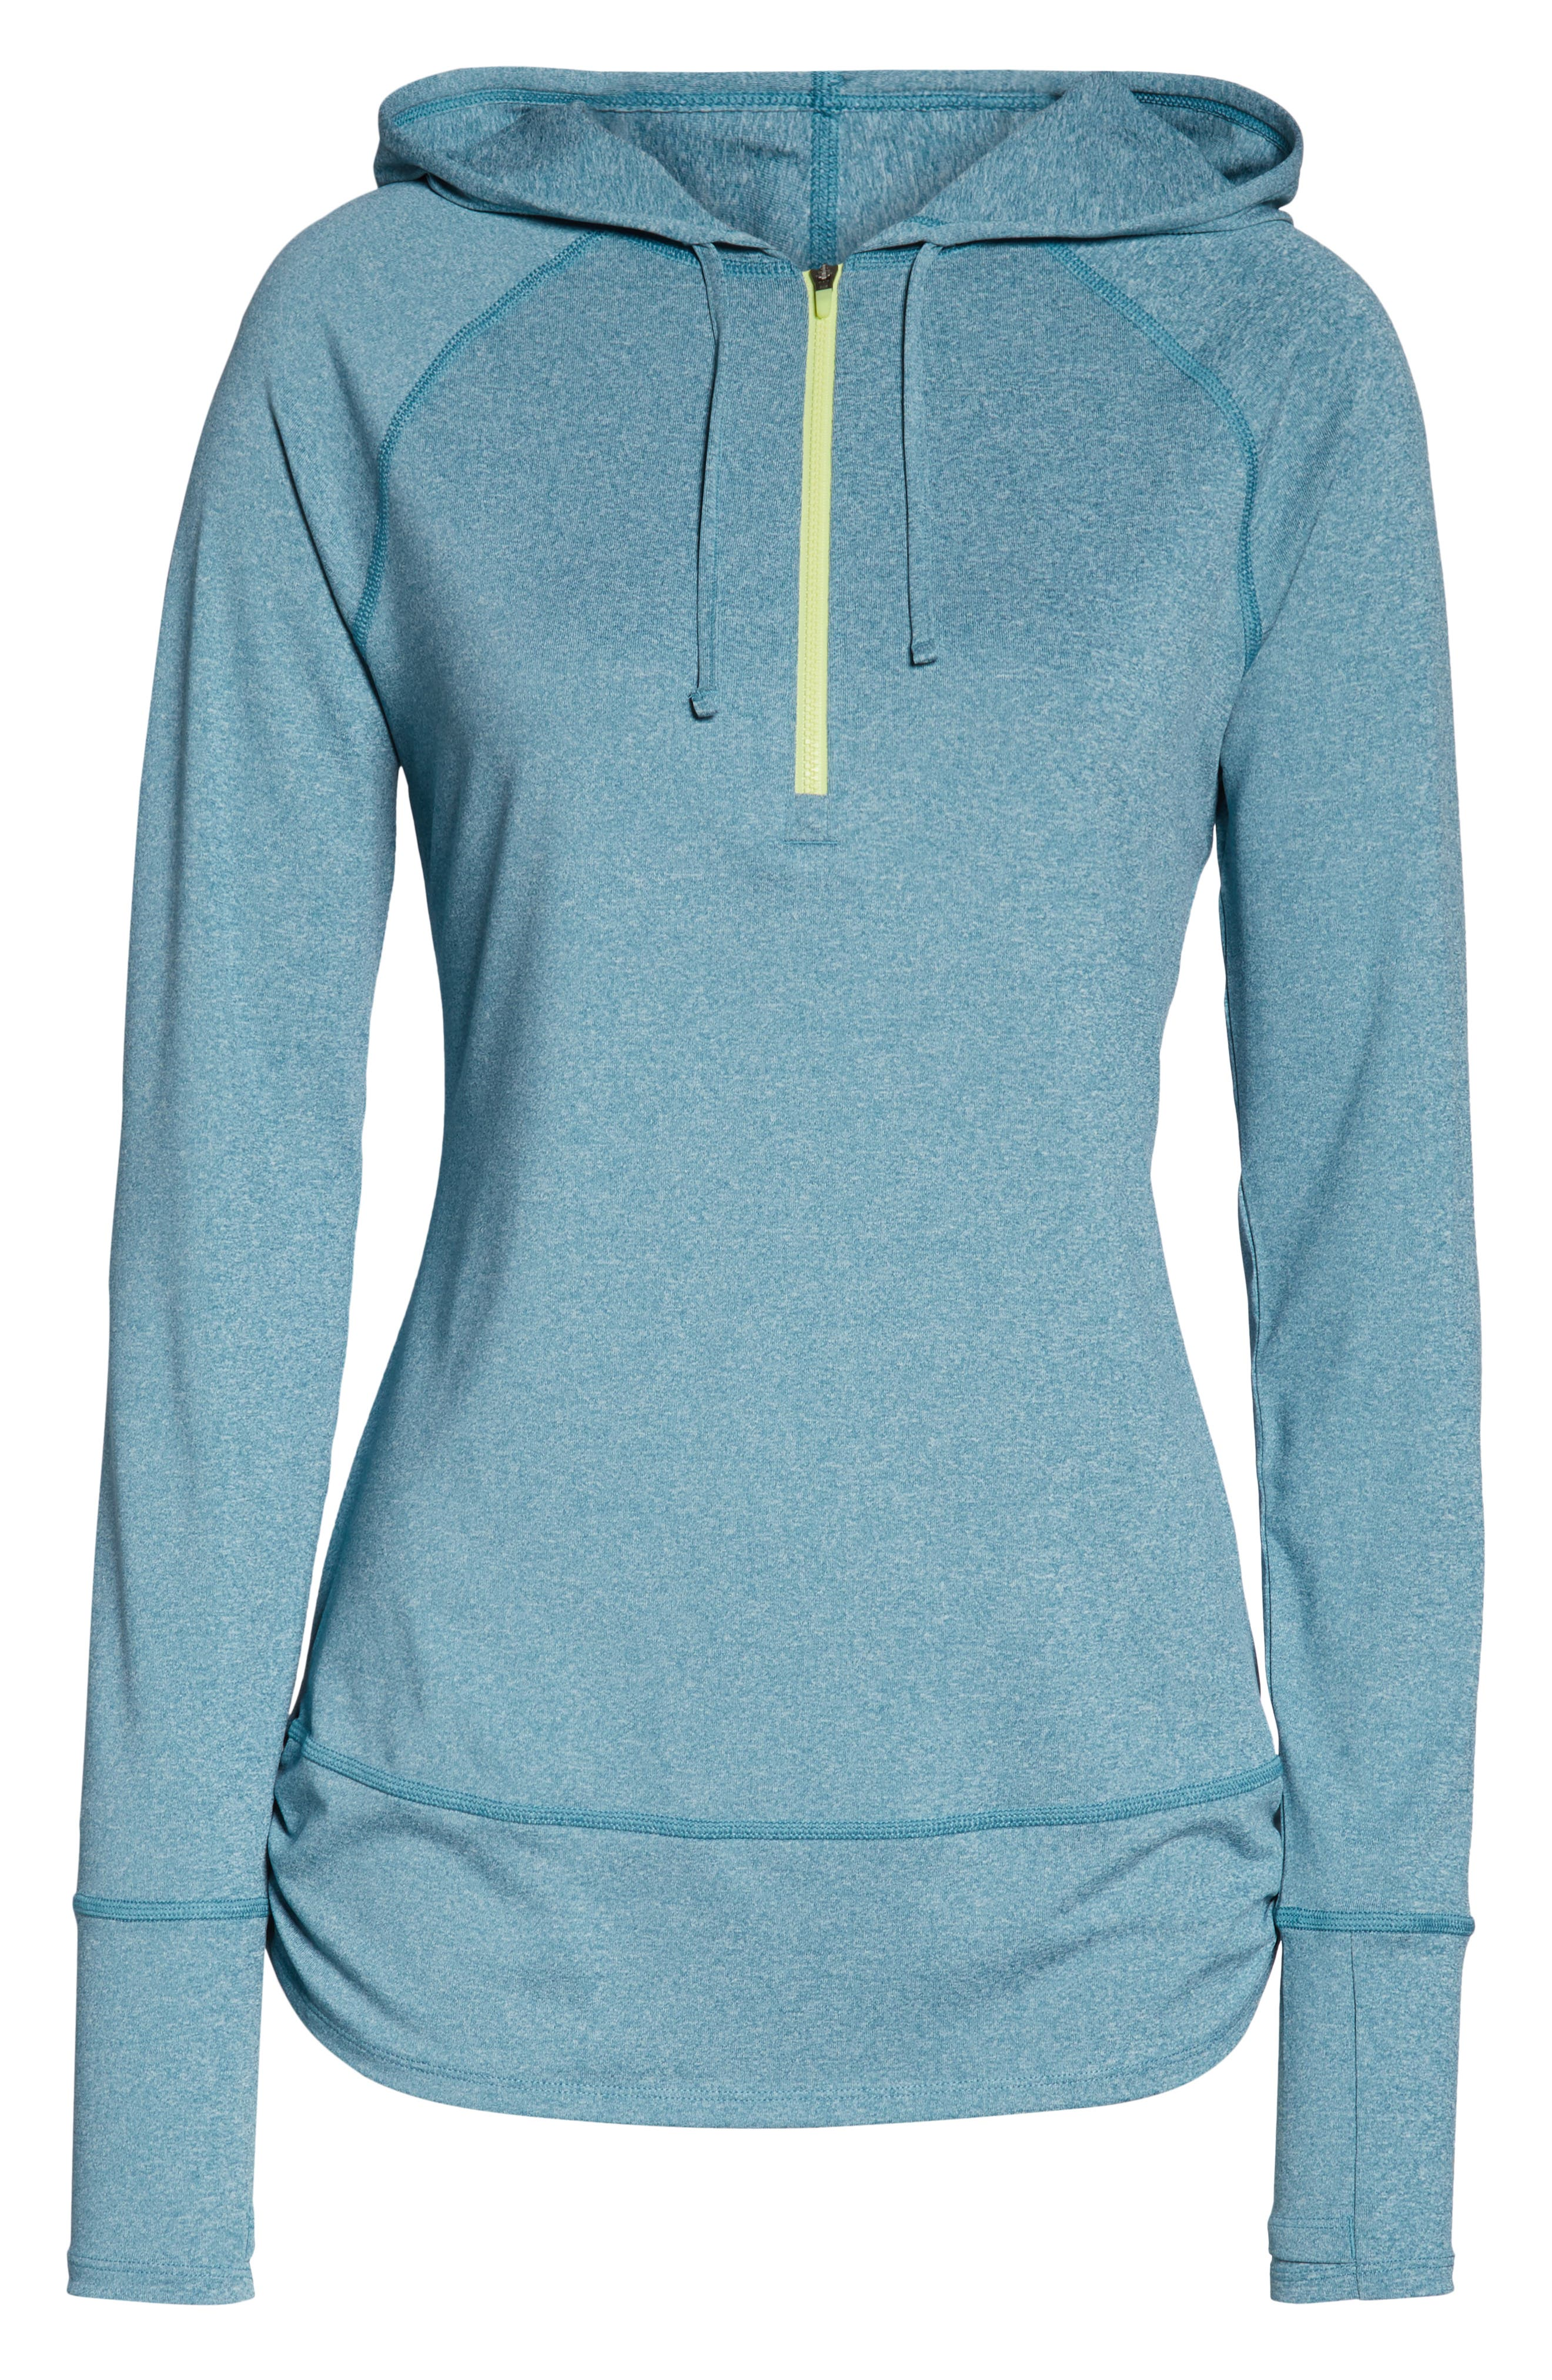 THE NORTH FACE, Shade Me Quarter Zip Hoodie, Alternate thumbnail 7, color, STORM BLUE HEATHER